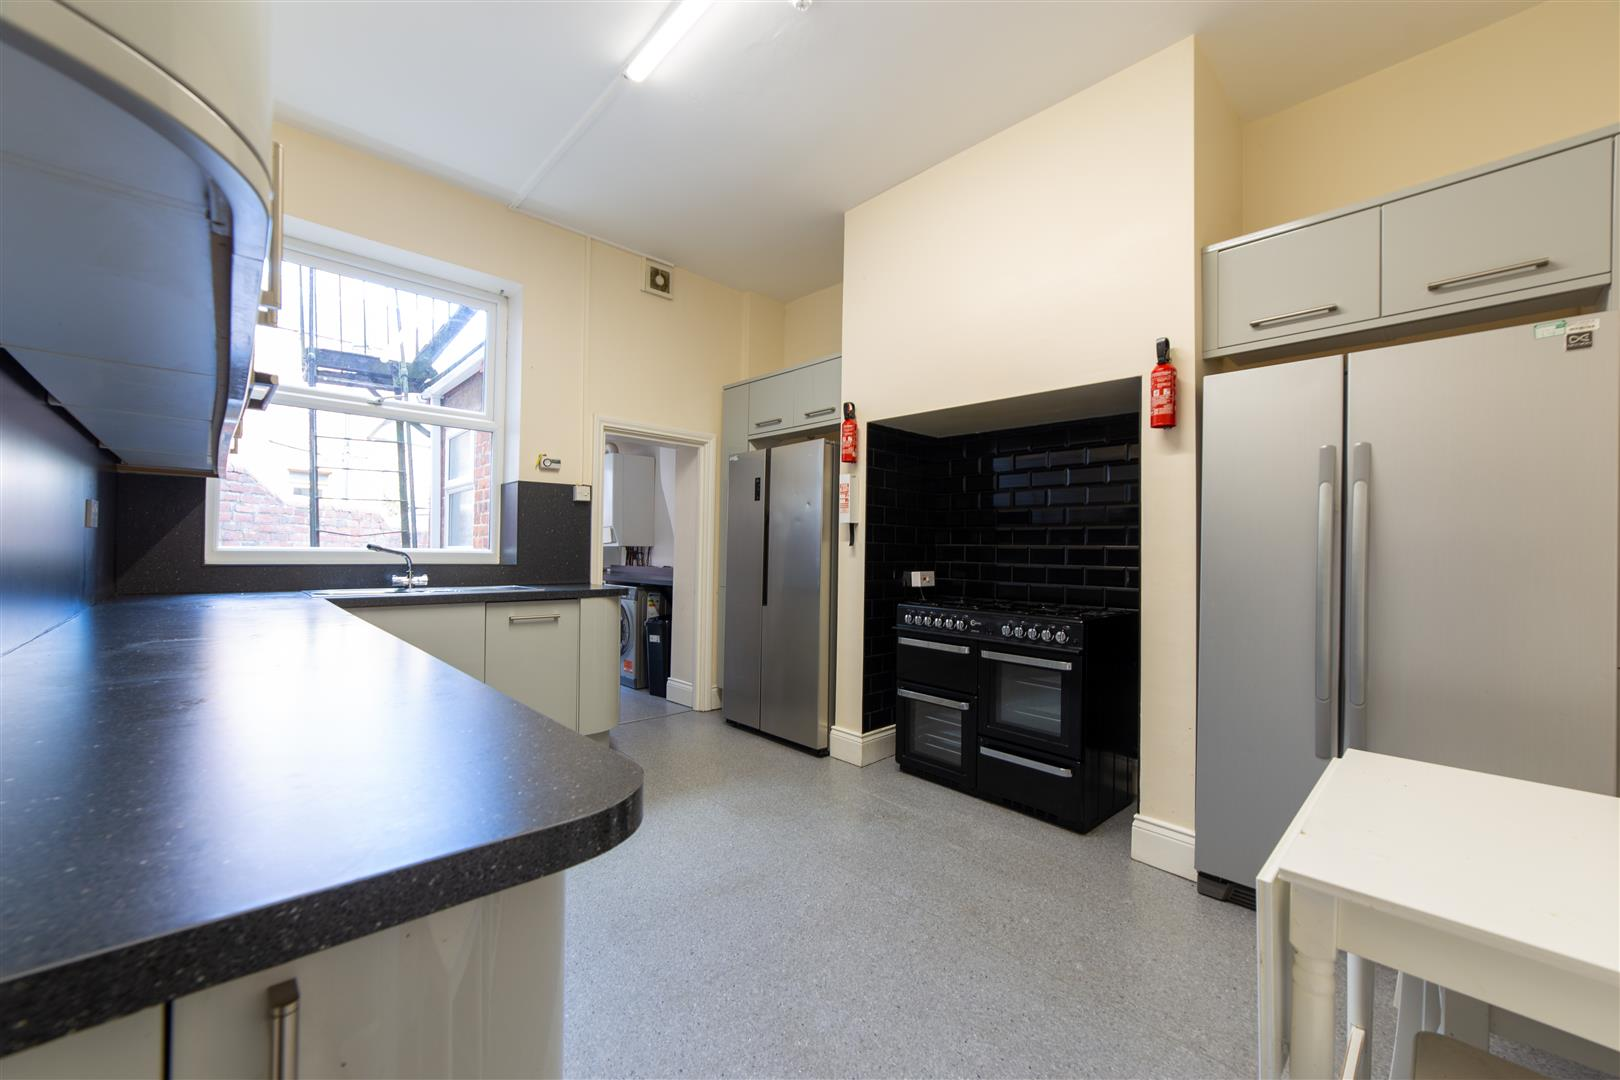 8 bed terraced house to rent in Newcastle Upon Tyne, NE2 1JS 1